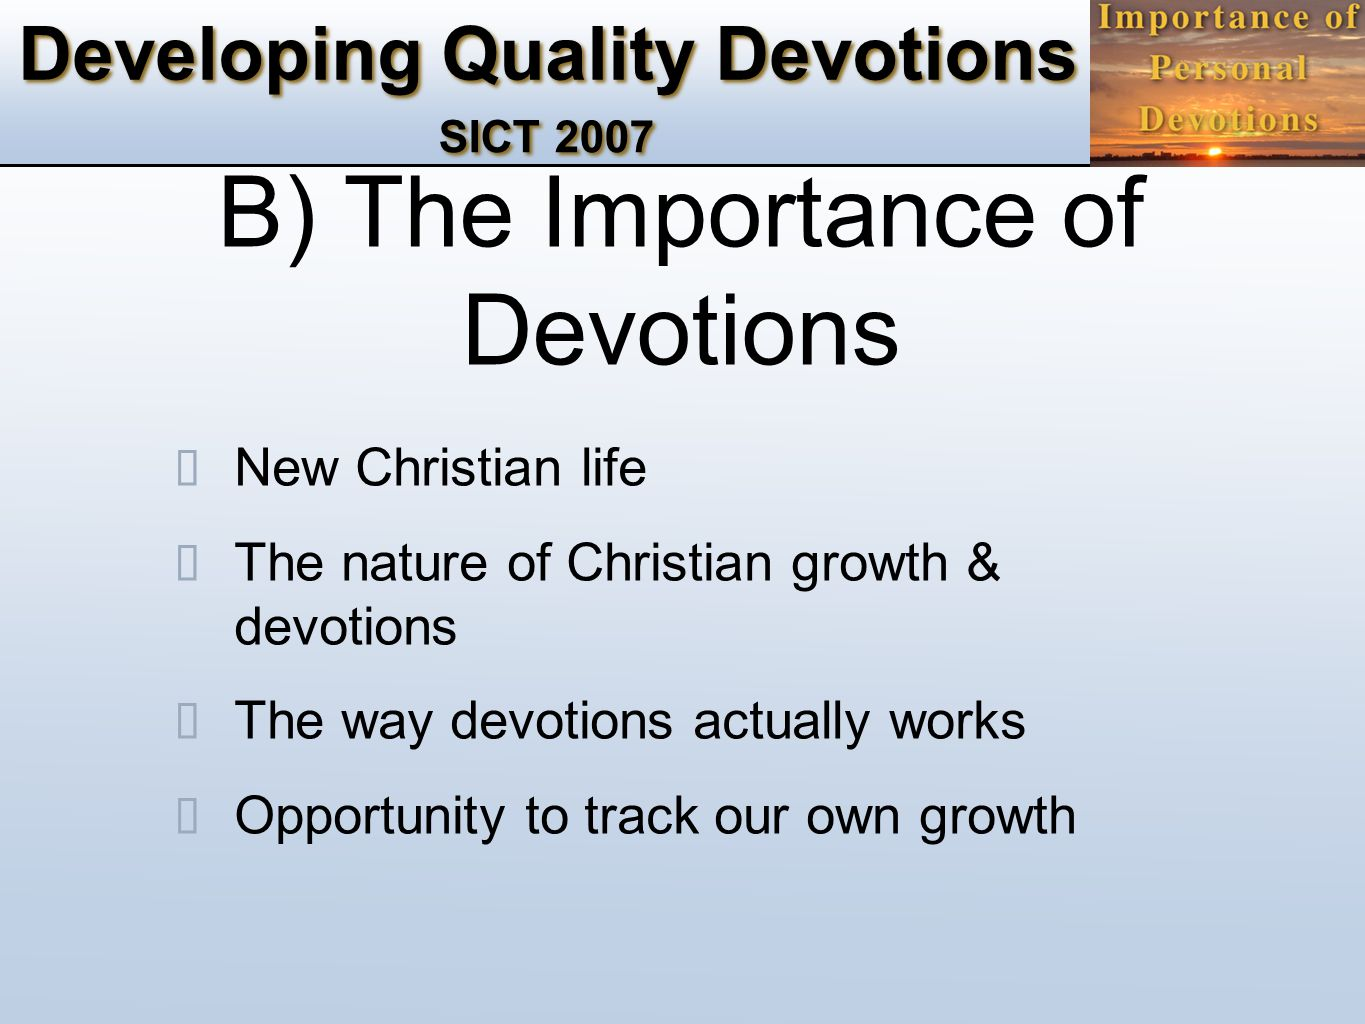 Developing Quality Devotions SICT 2007 B) The Importance of Devotions ✴ New Christian life ✴ The nature of Christian growth & devotions ✴ The way devotions actually works ✴ Opportunity to track our own growth